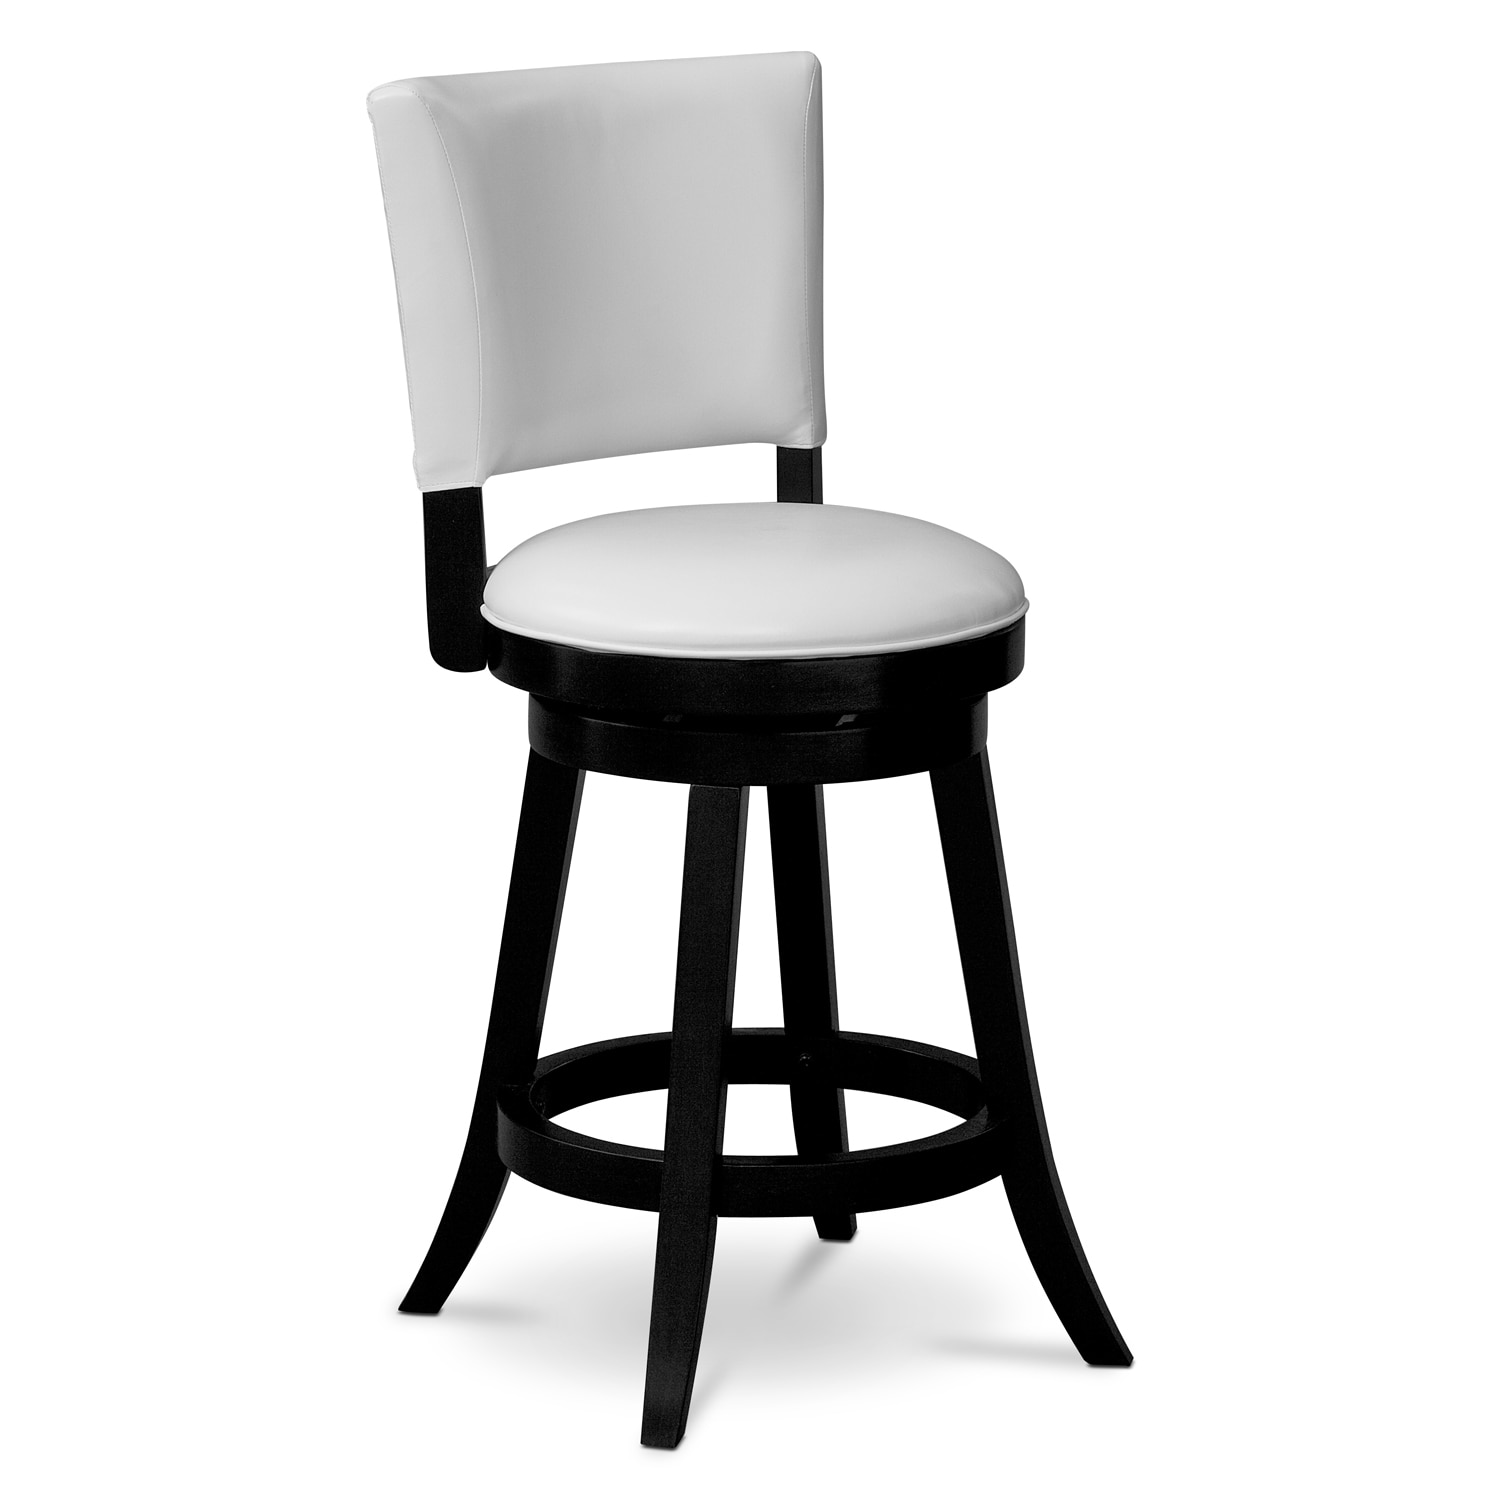 Counter Height Vs Bar Stool : Easton Dining Room Counter-Height Stool - Value City Furniture